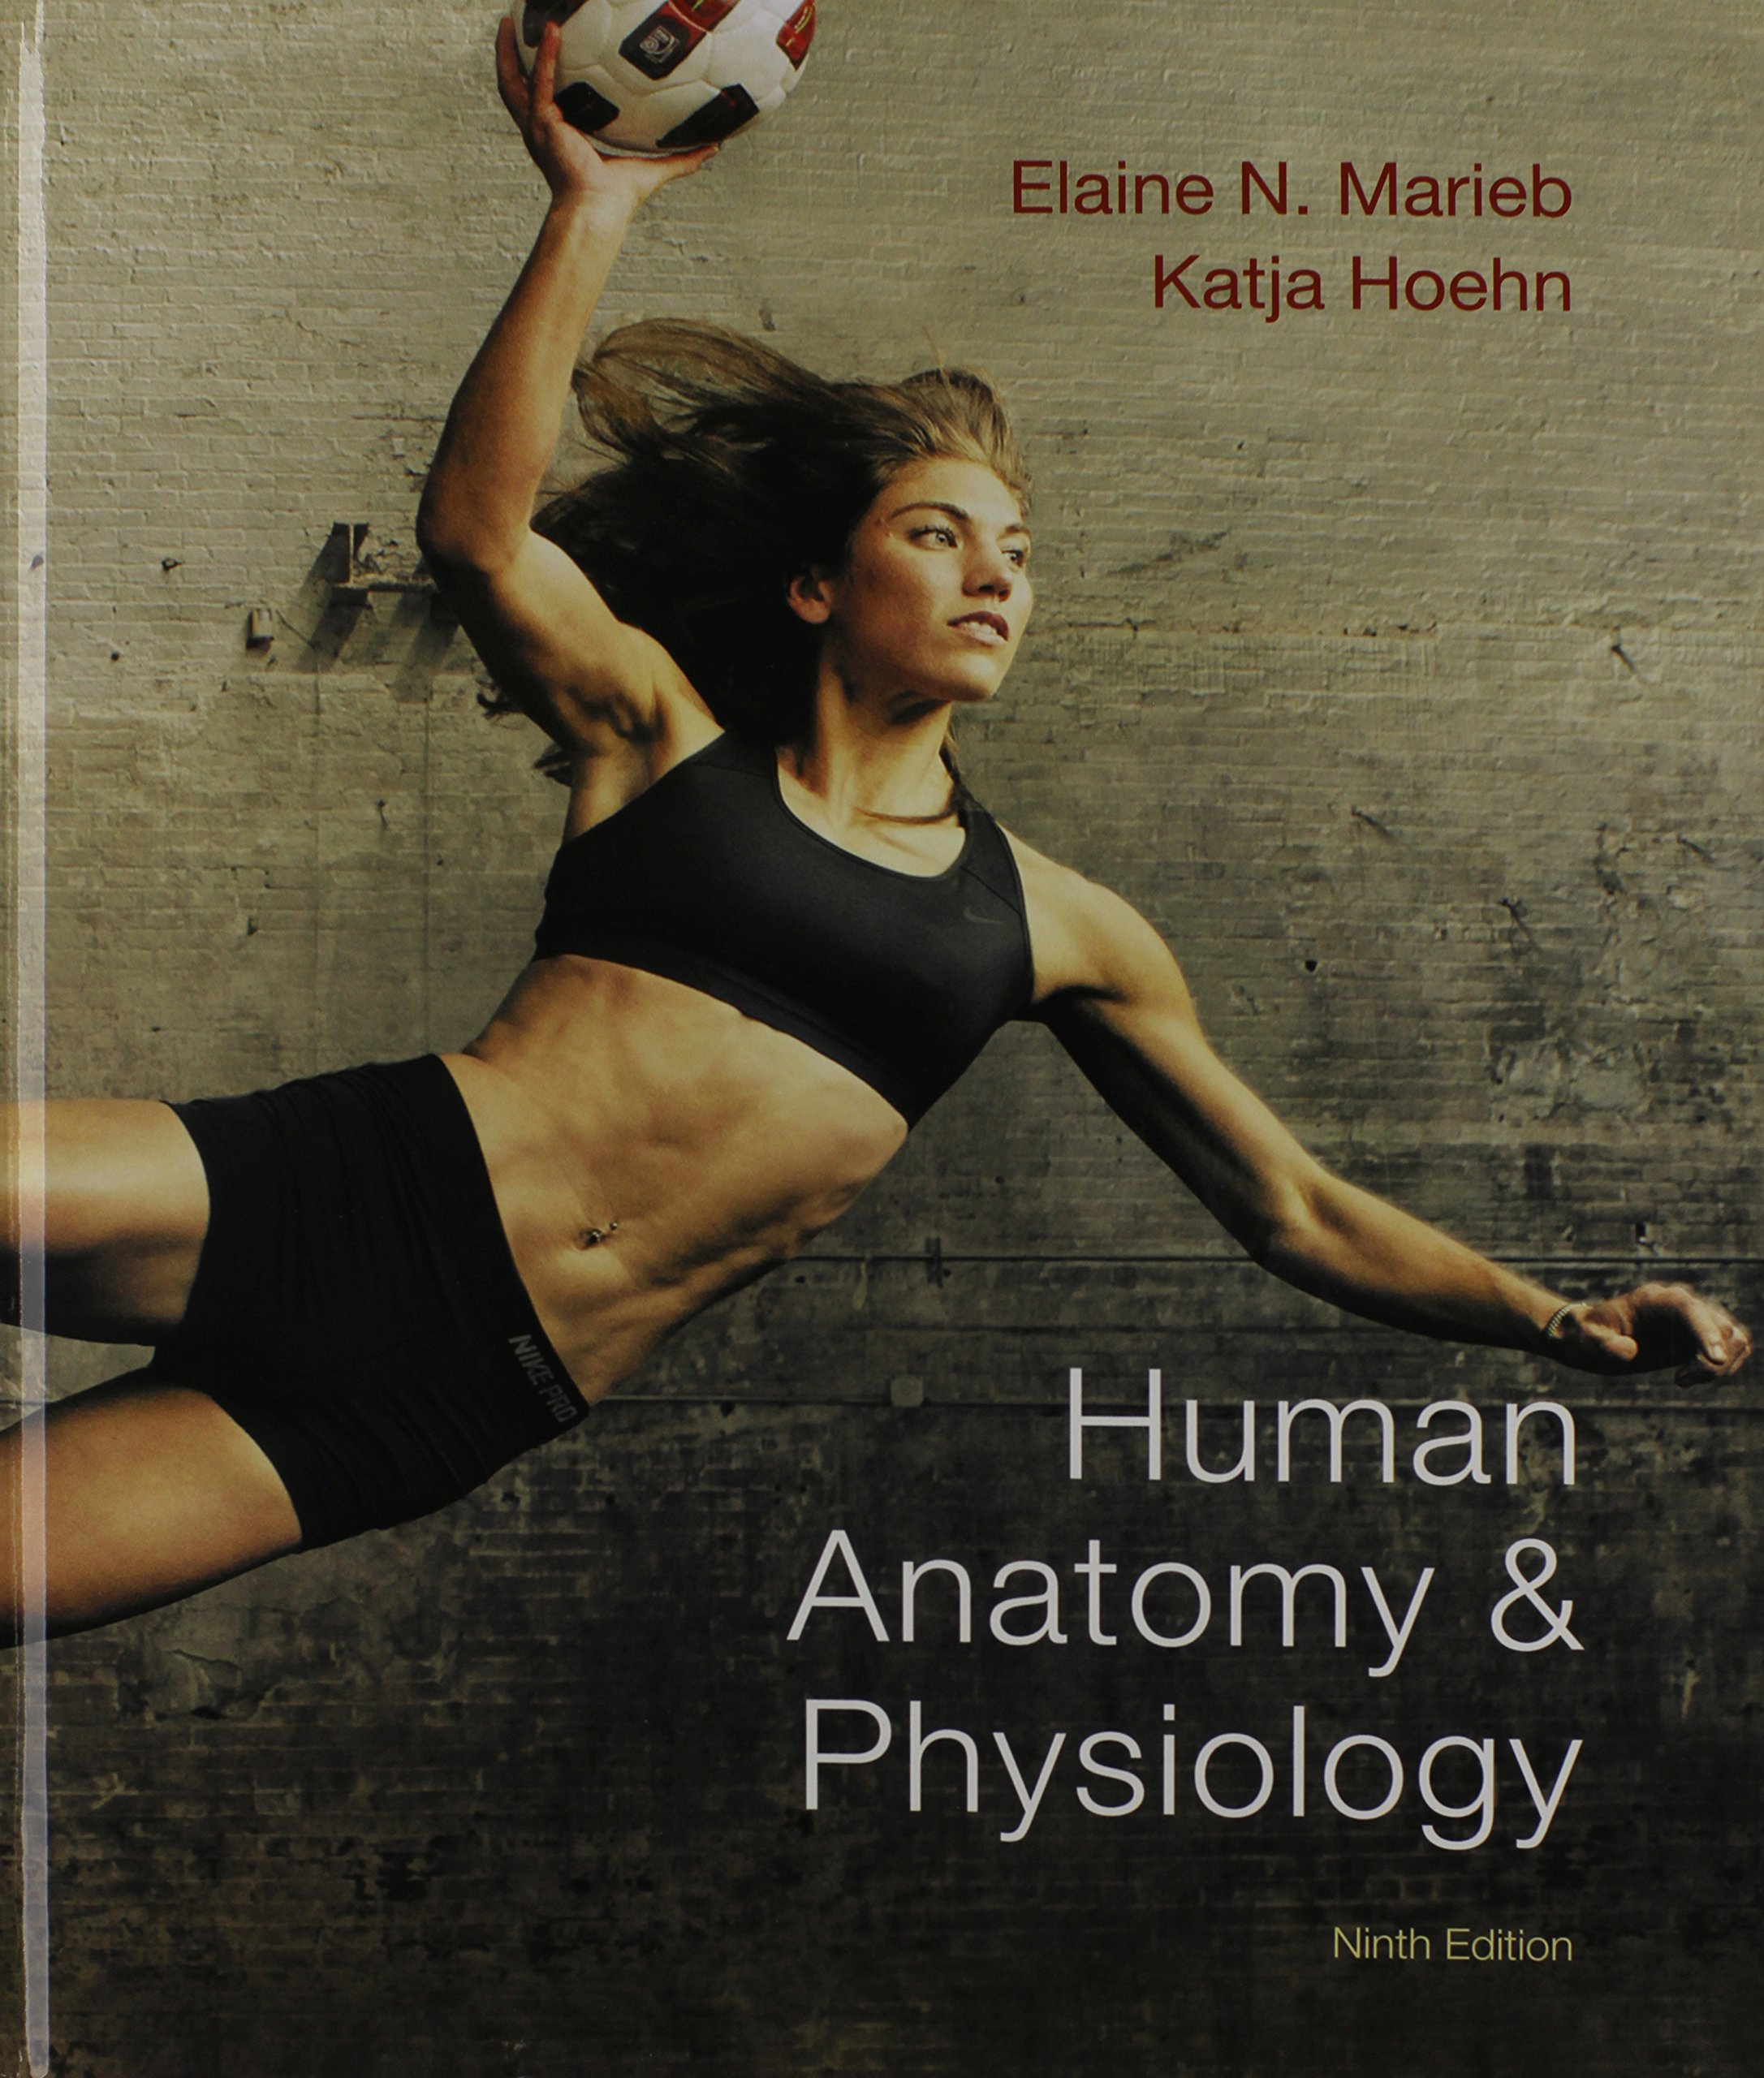 Atemberaubend Human Anatomy And Physiology Textbook Ideen ...